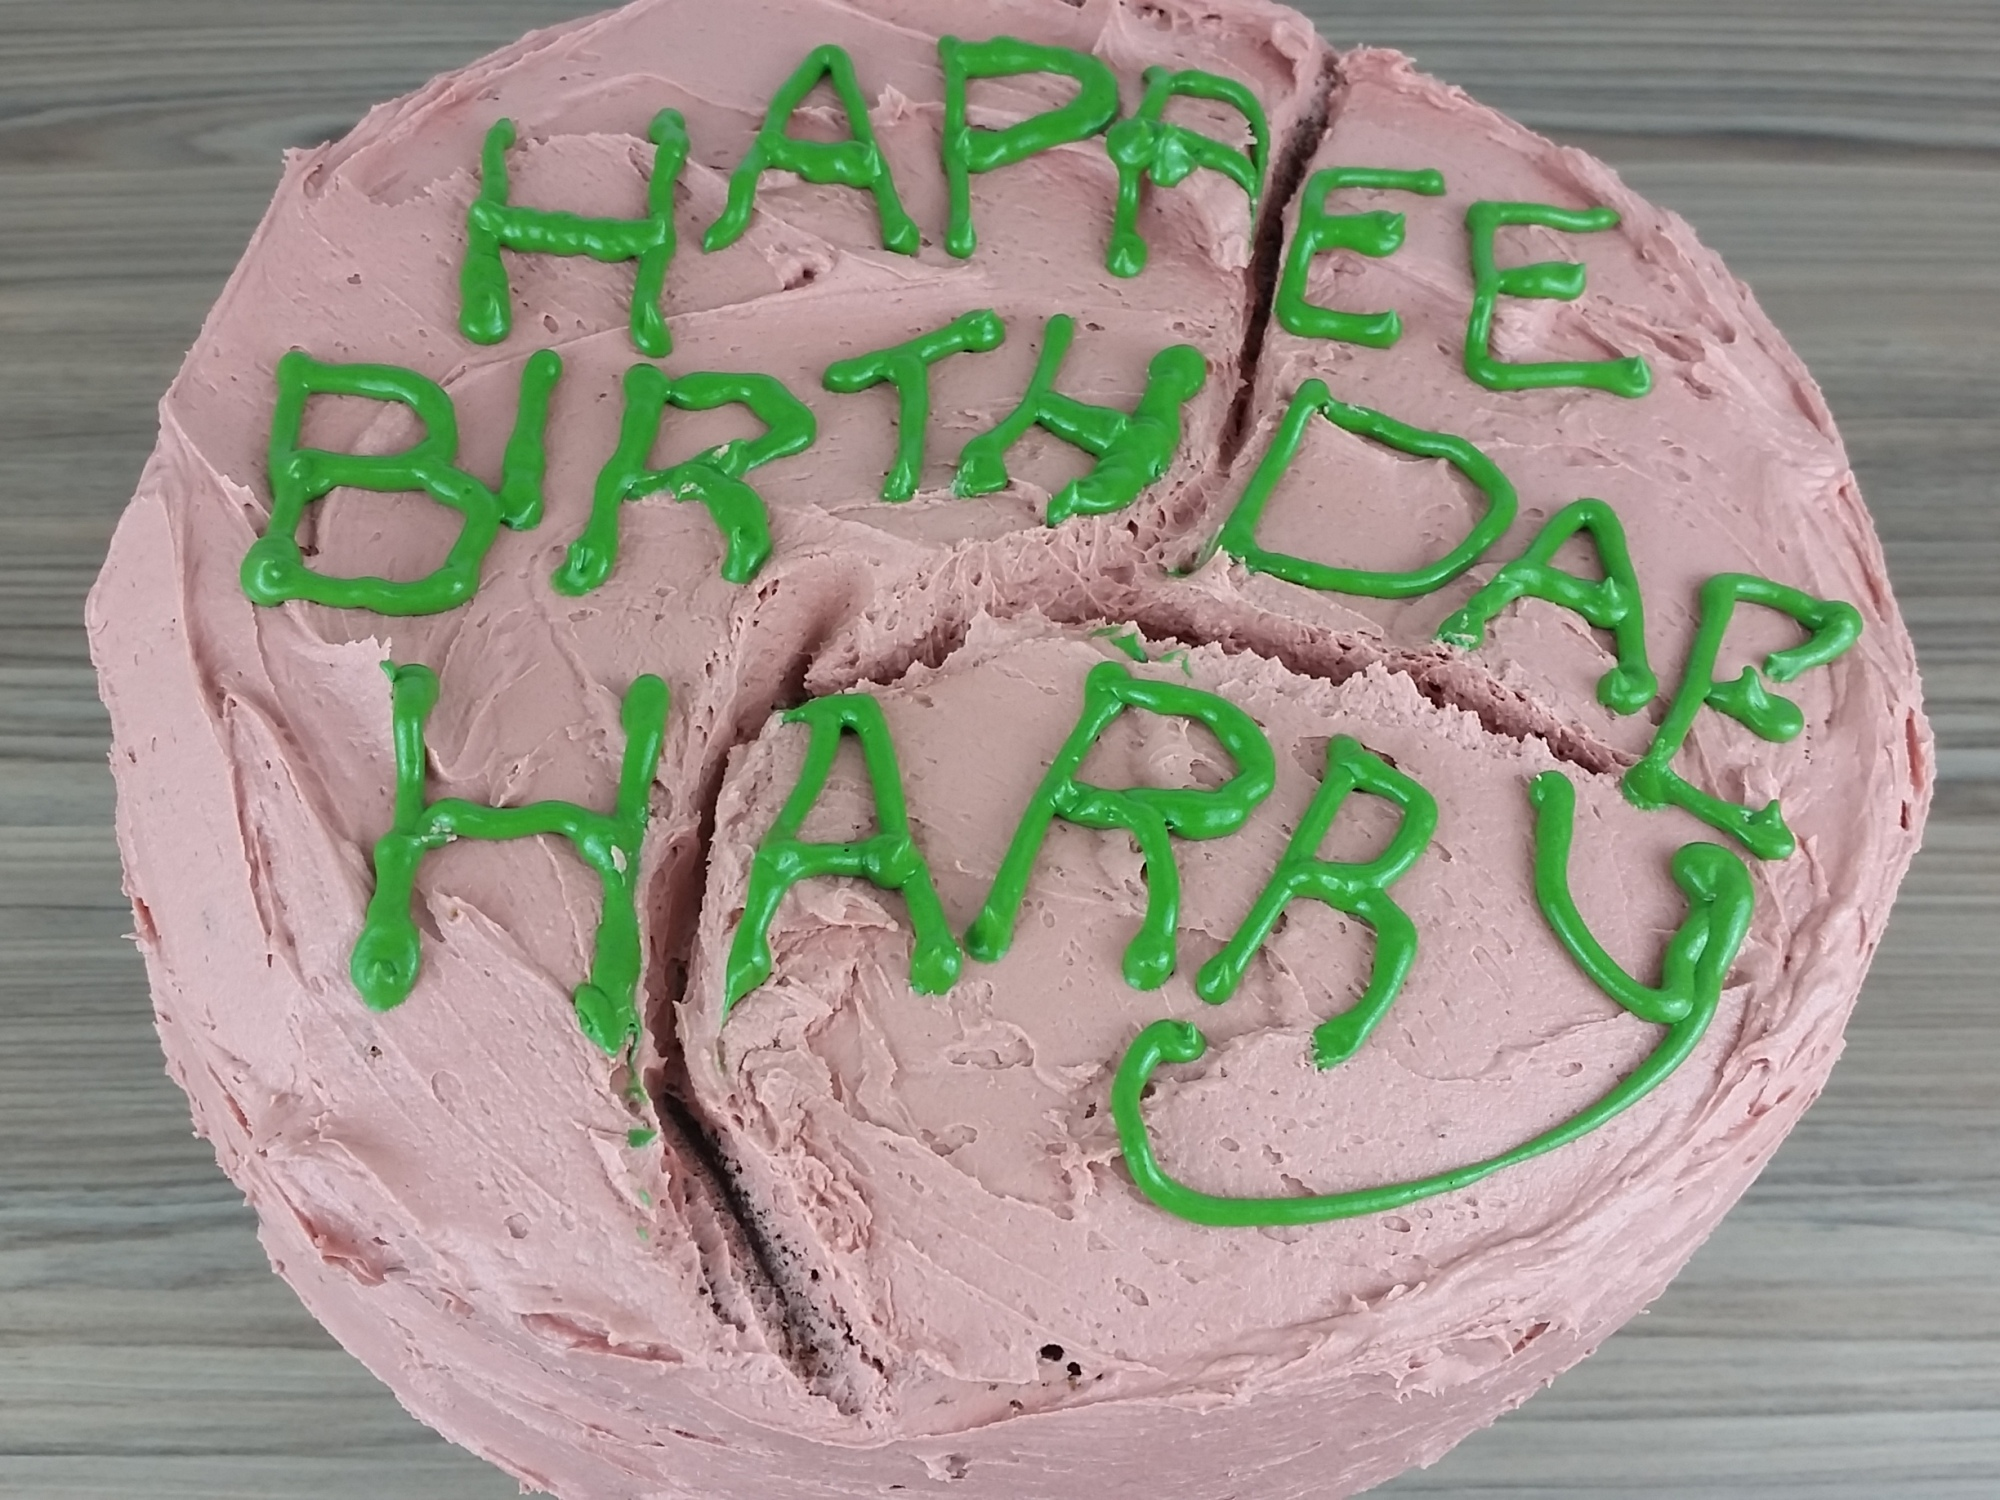 Admirable Harry Potters Birthday Cake From Hagrid Carlytoffle Personalised Birthday Cards Paralily Jamesorg